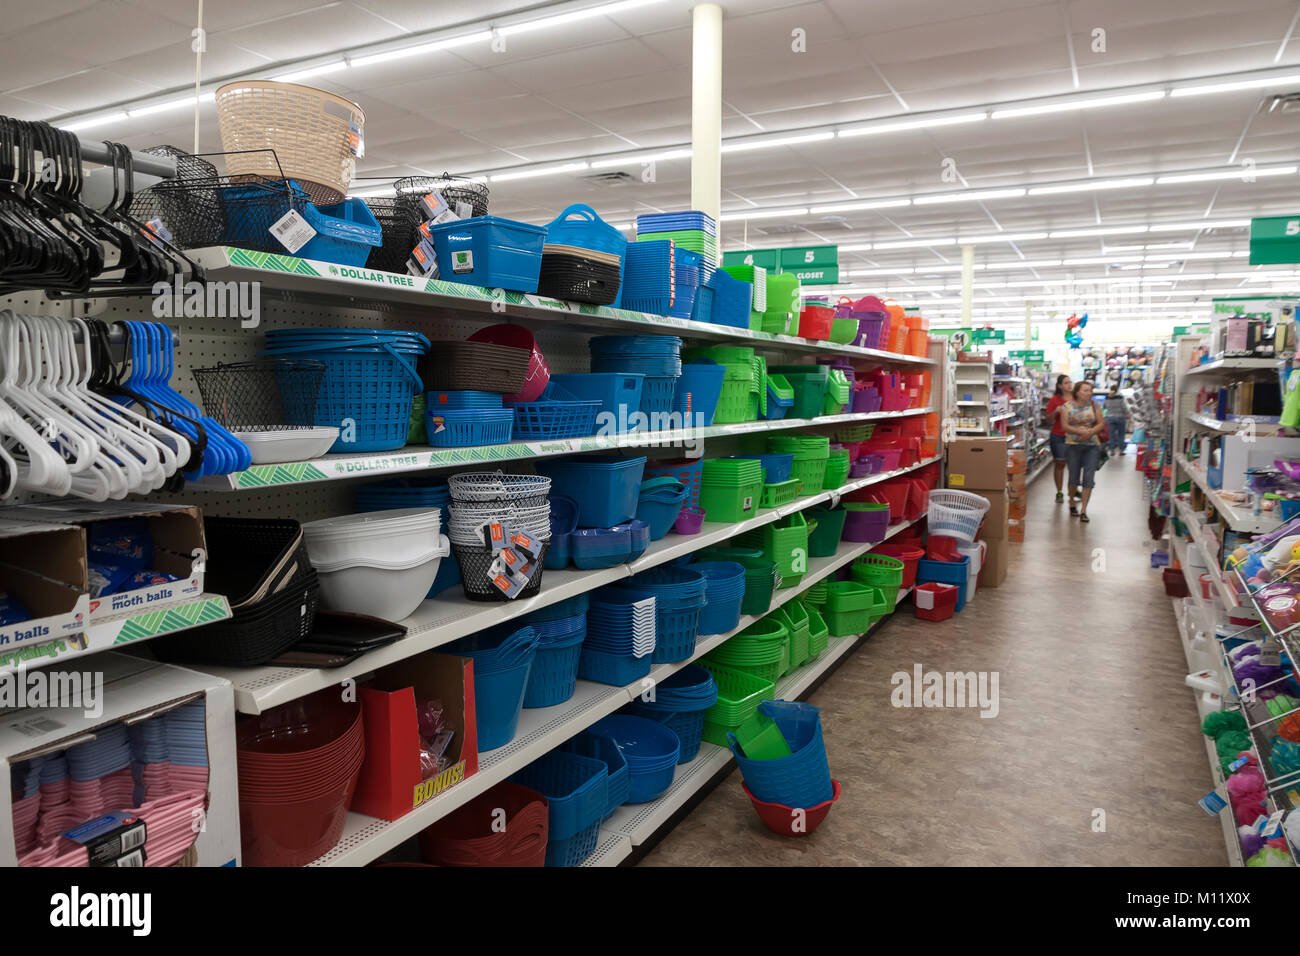 Plastic storage containers and closet products for sale in a Dollar